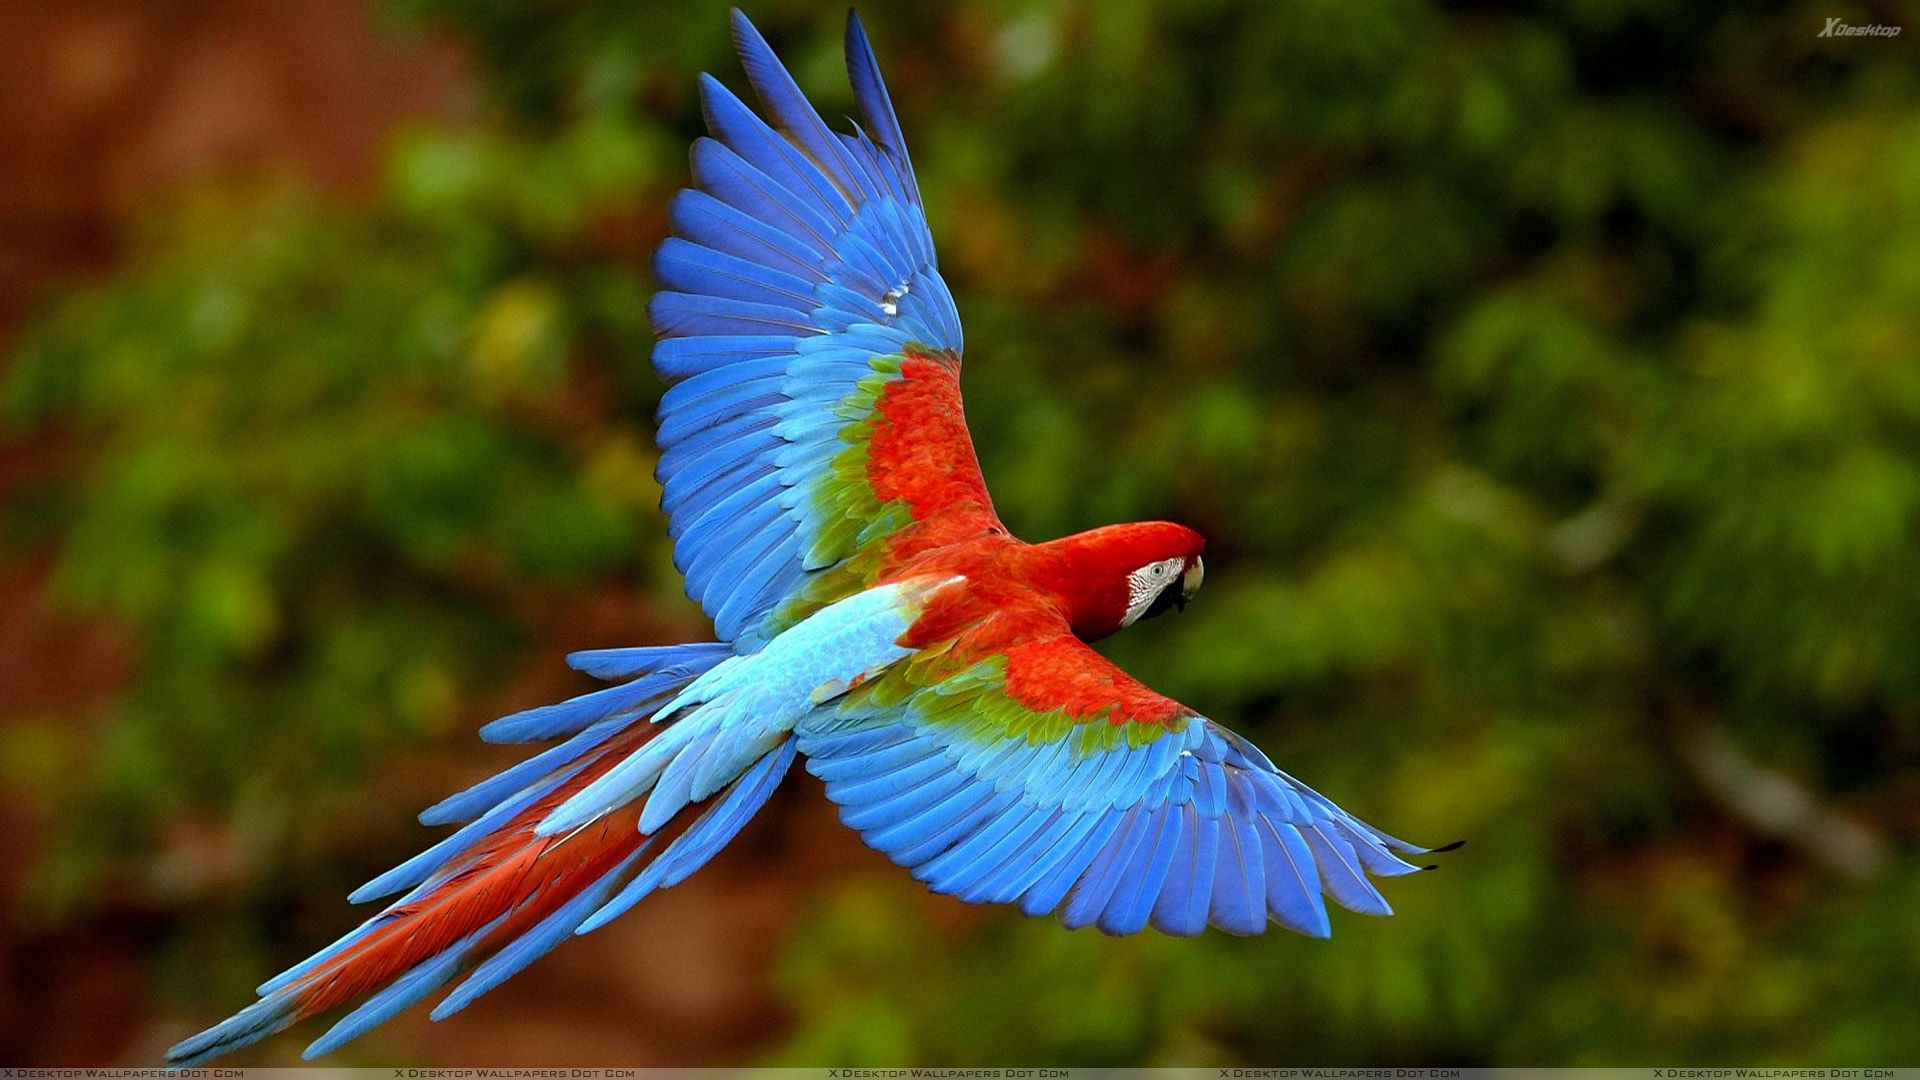 Flying Blue Bird Beautiful Blue Bird Flying In The Wild Rainforest Animals Pet Birds Colorful Parrots